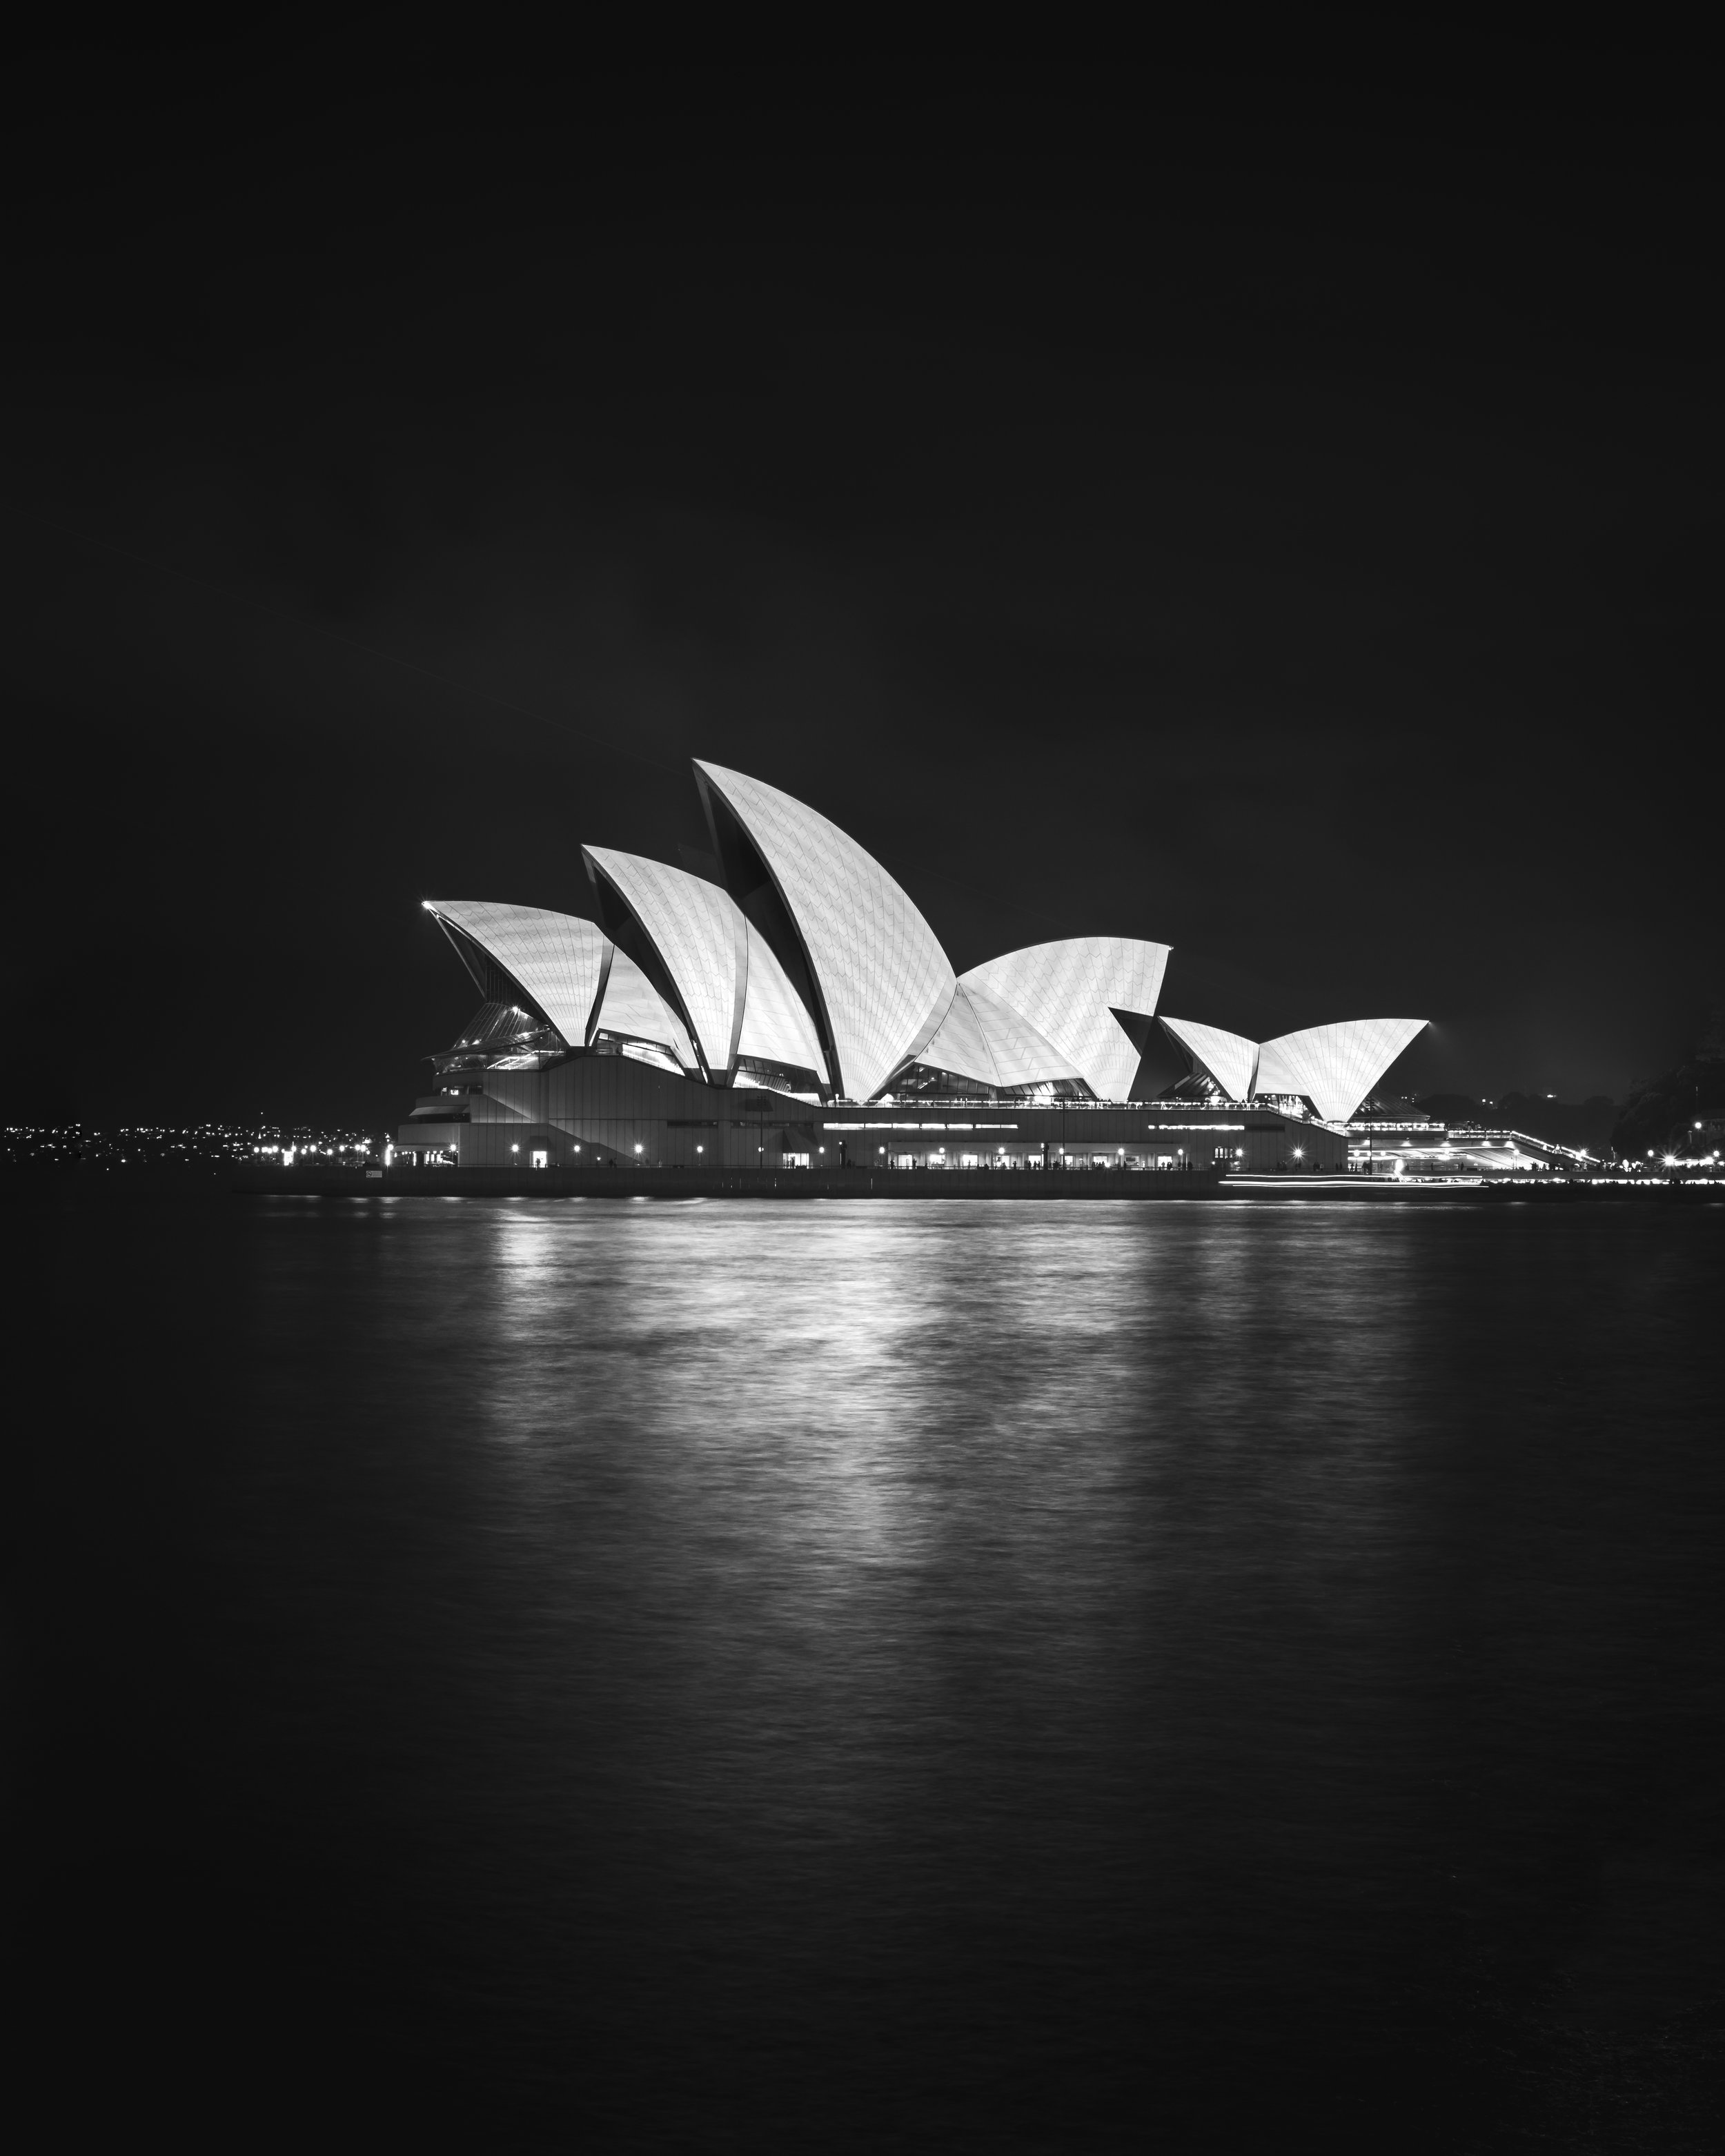 Using the Burn tool (midtones and shadows) I was able to preserve the details in the sails of the Opera House without killing the brightness of the whites.